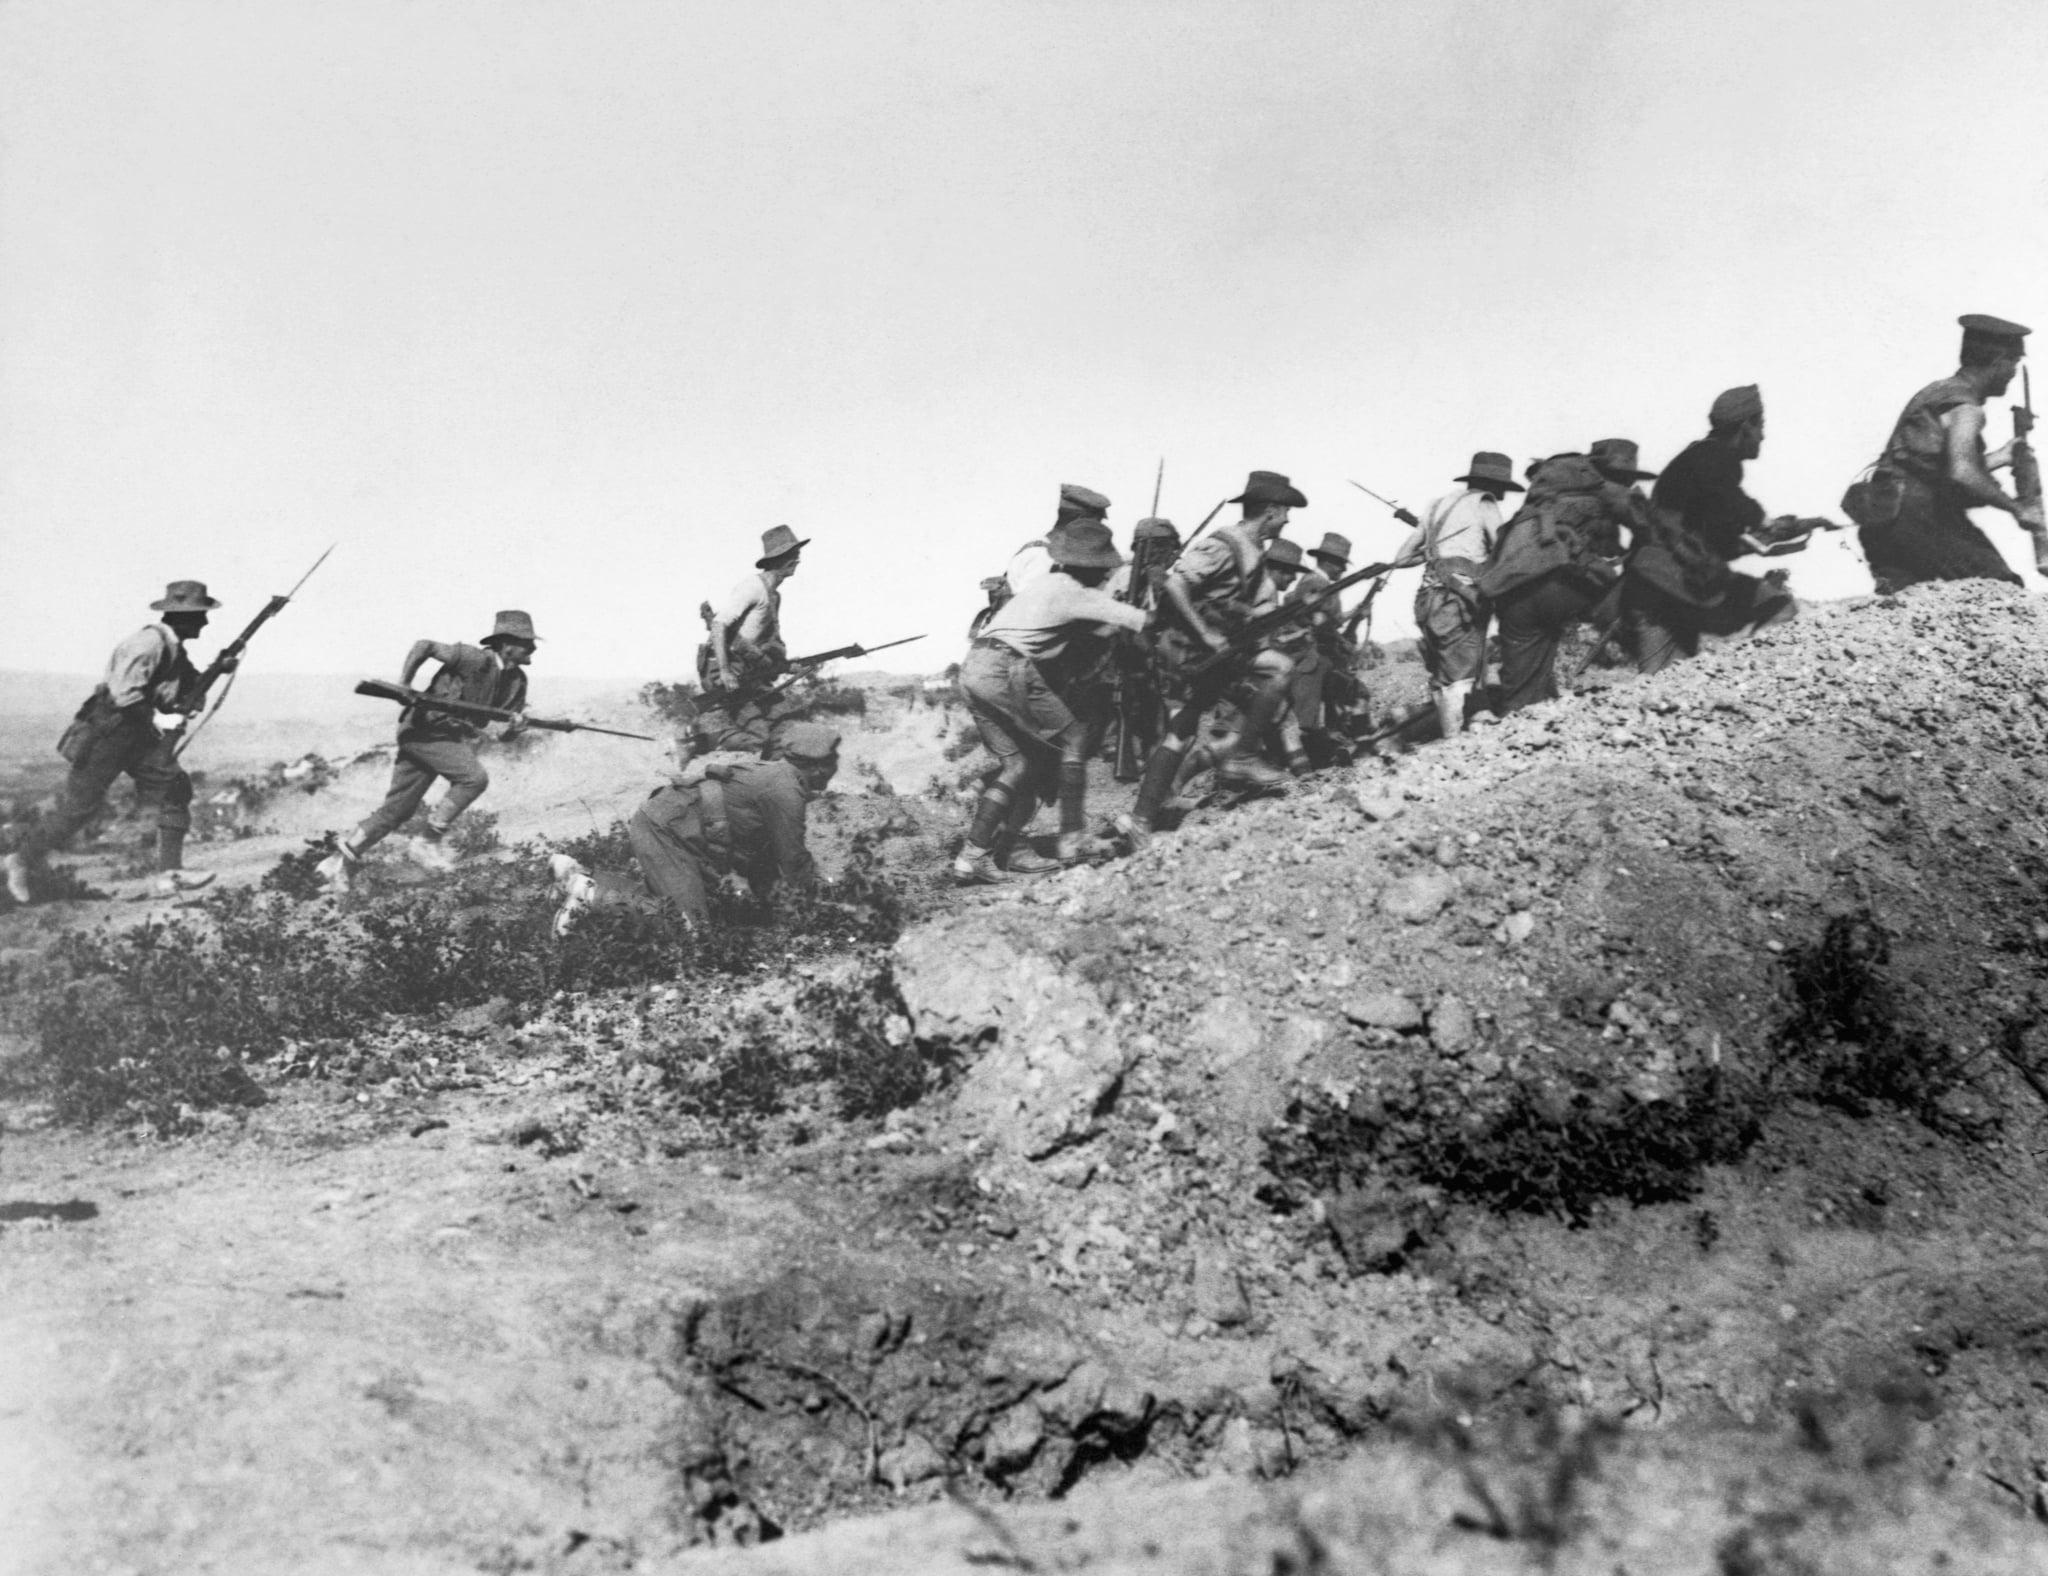 Australian troops charge near a Turkish trench just before the evacuation at Anzac. When they got there the Turks had flown. Dardanelles Campaign, ca. 1915. | Location: Gallipoli Penninsula, Turkey. (Photo by © CORBIS/Corbis via Getty Images)